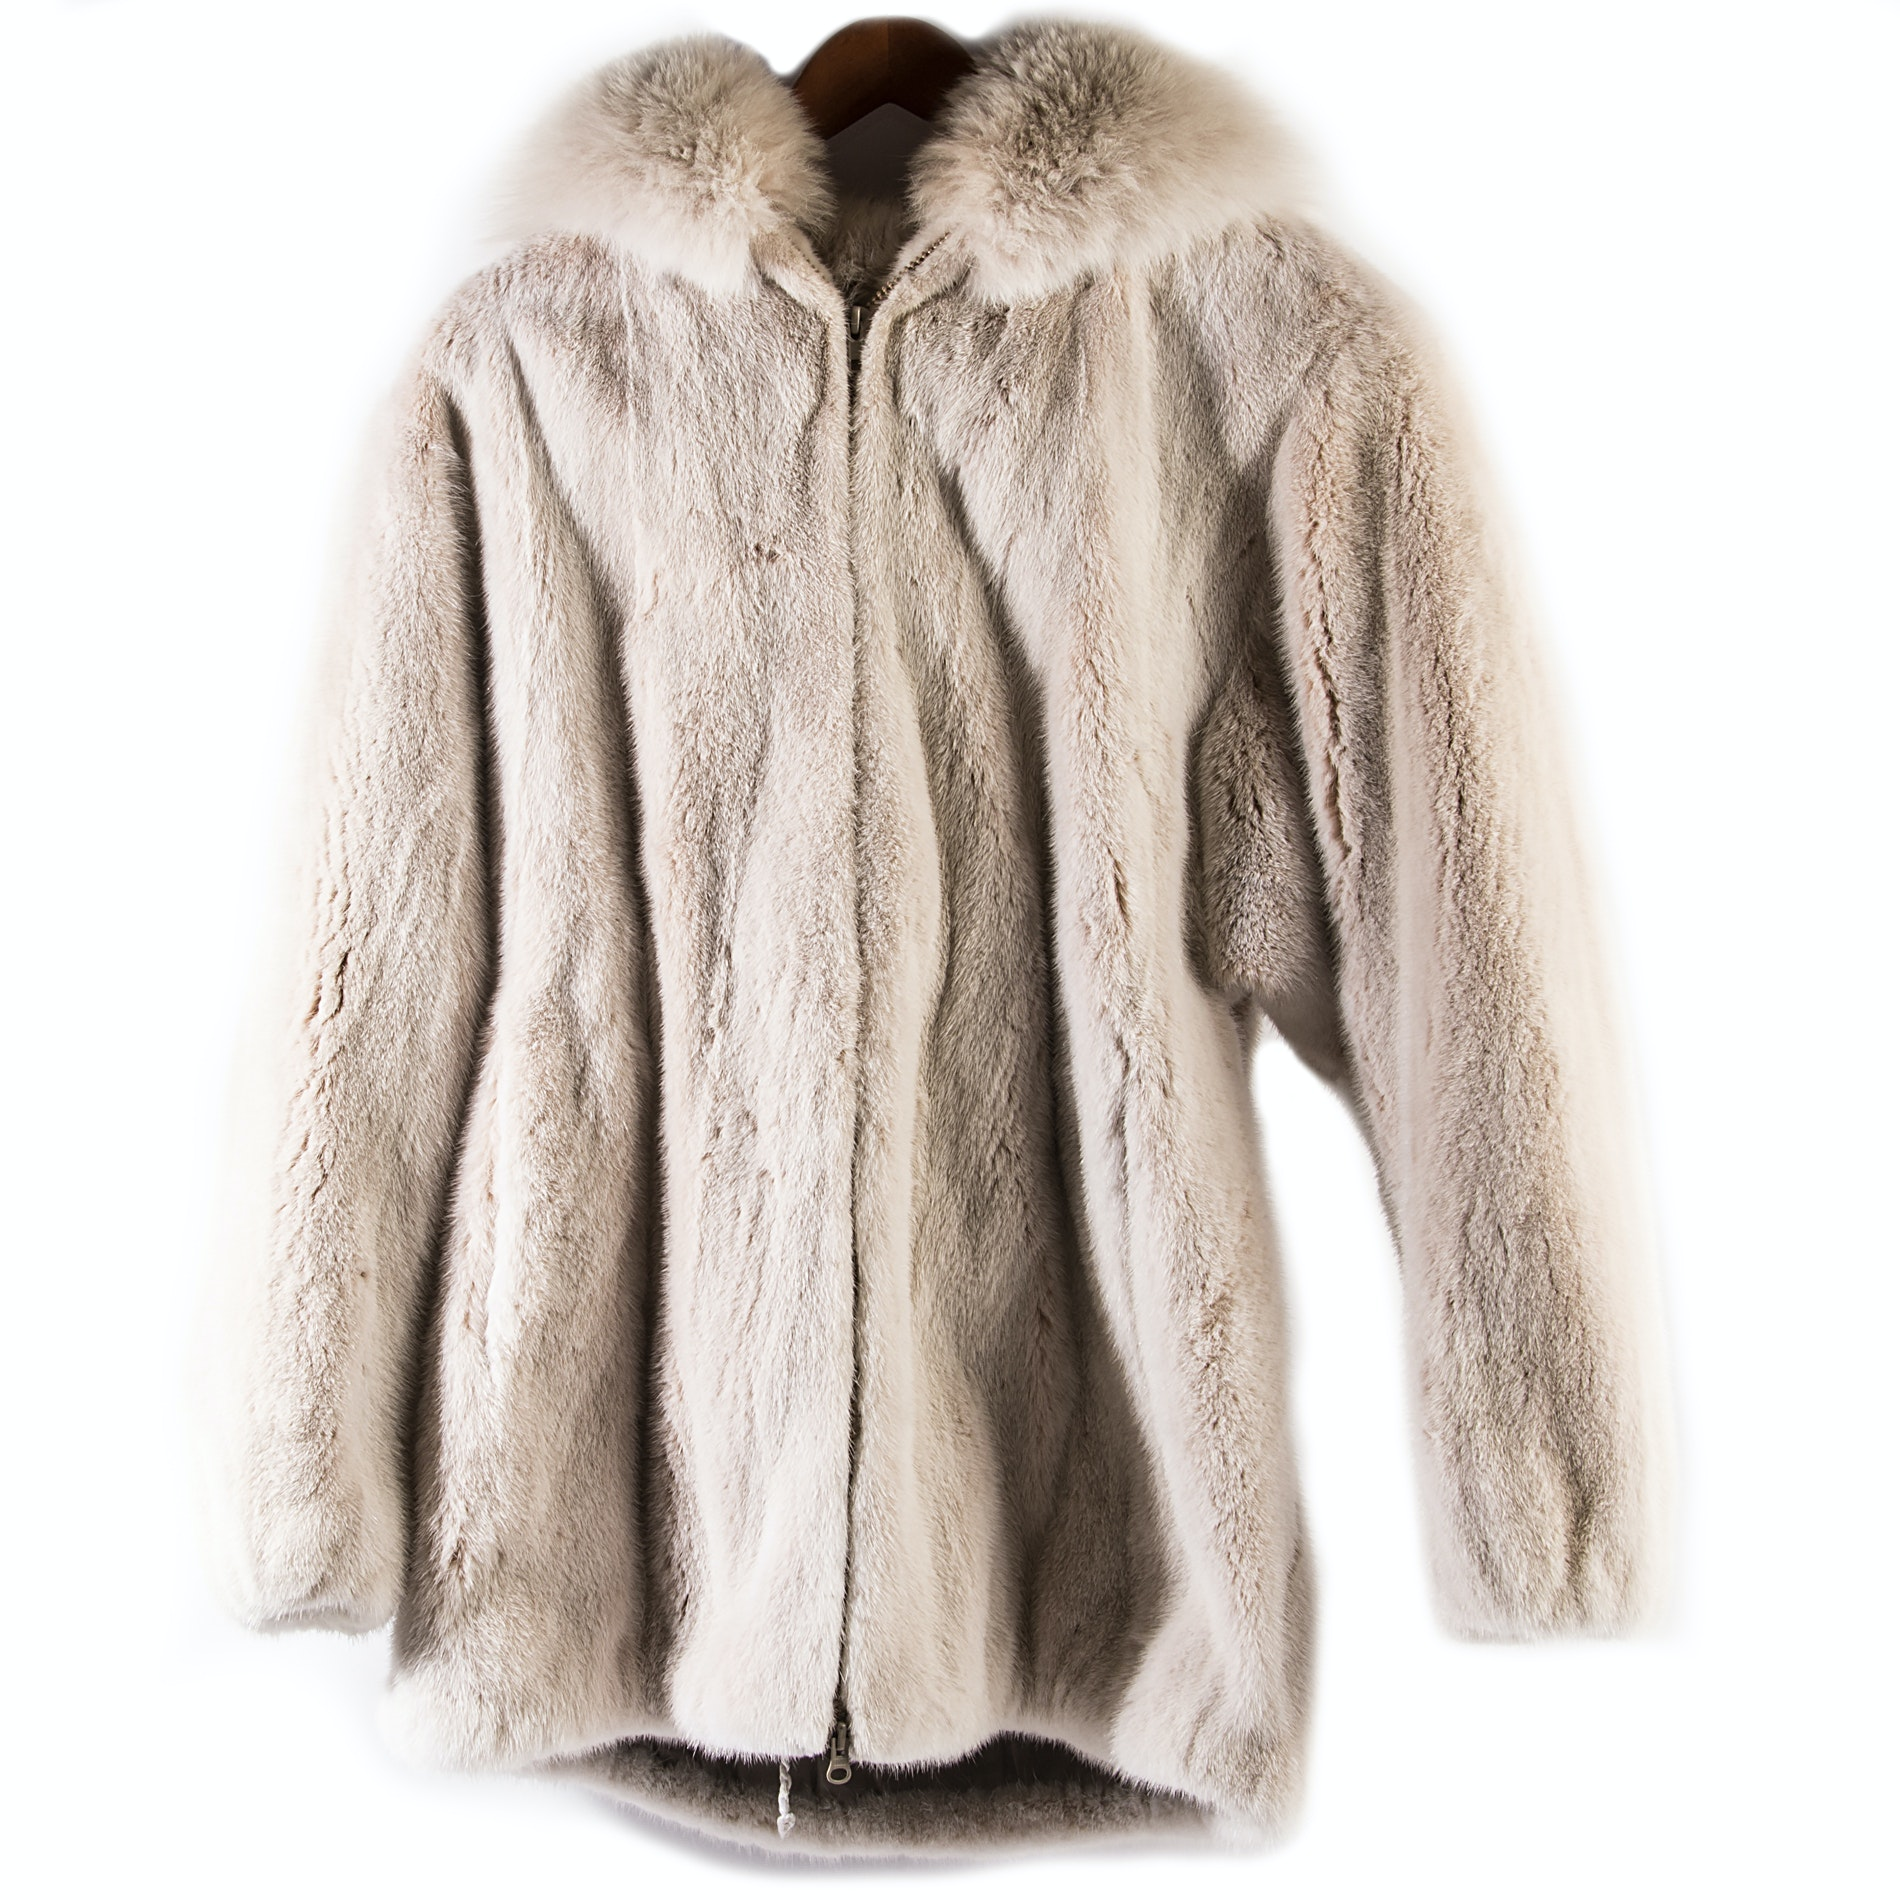 Off-White Mink Fur Hooded Coat with Fox Fur Trim